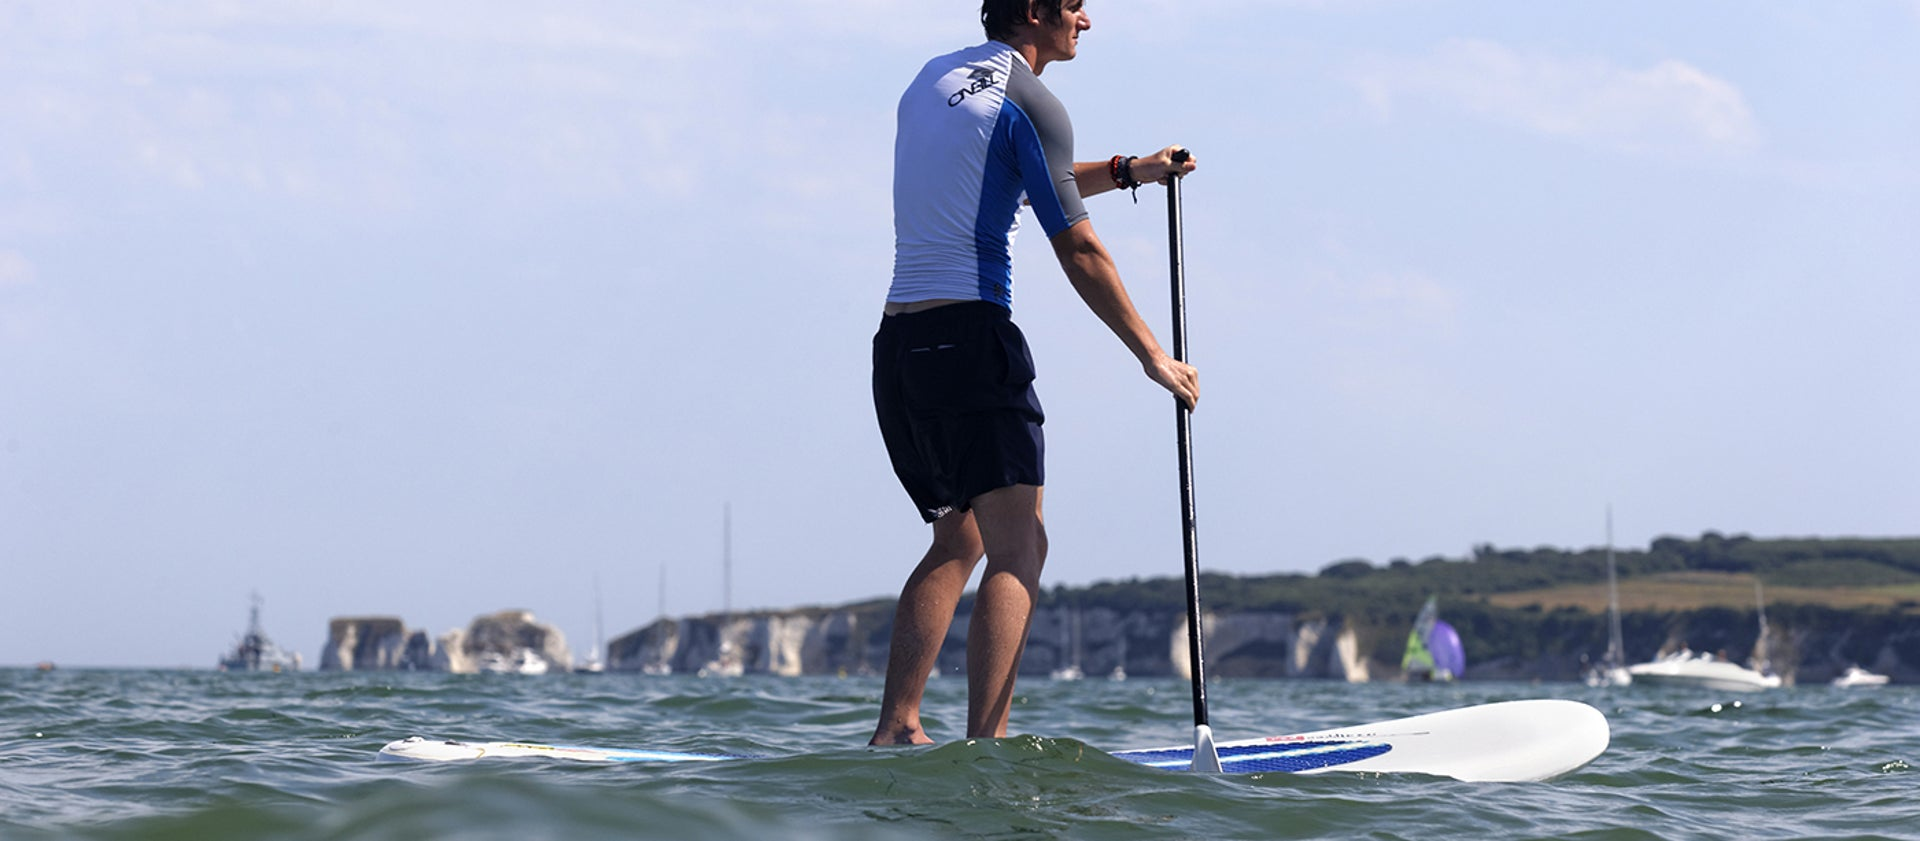 A summer of watersports | National TrustVisit our Facebook pageVisit our Twitter pageVisit our